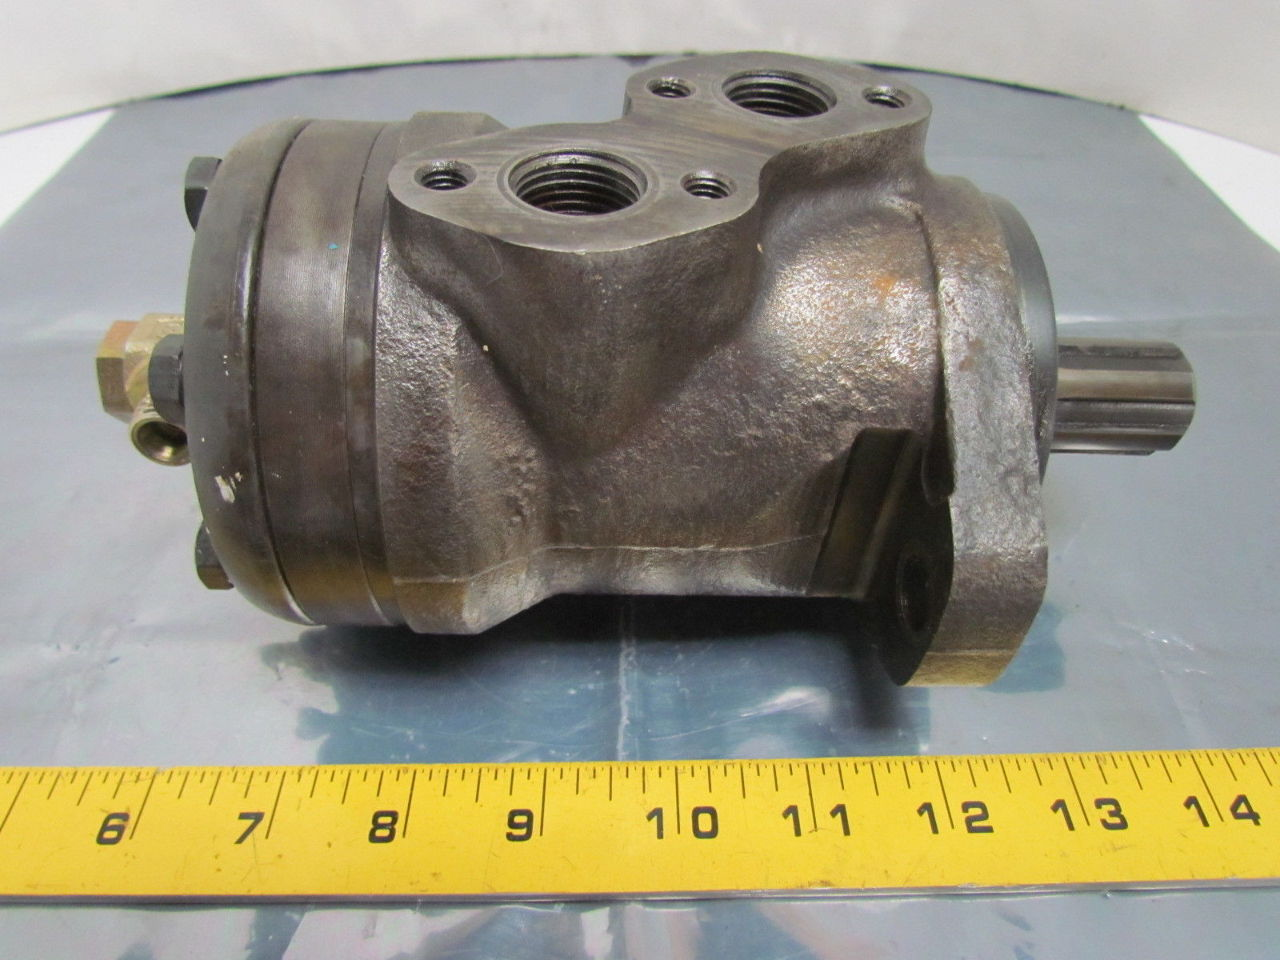 Danfoss 80 151 0236 4 hydraulic motor bullseye for Danfoss hydraulic motor catalogue